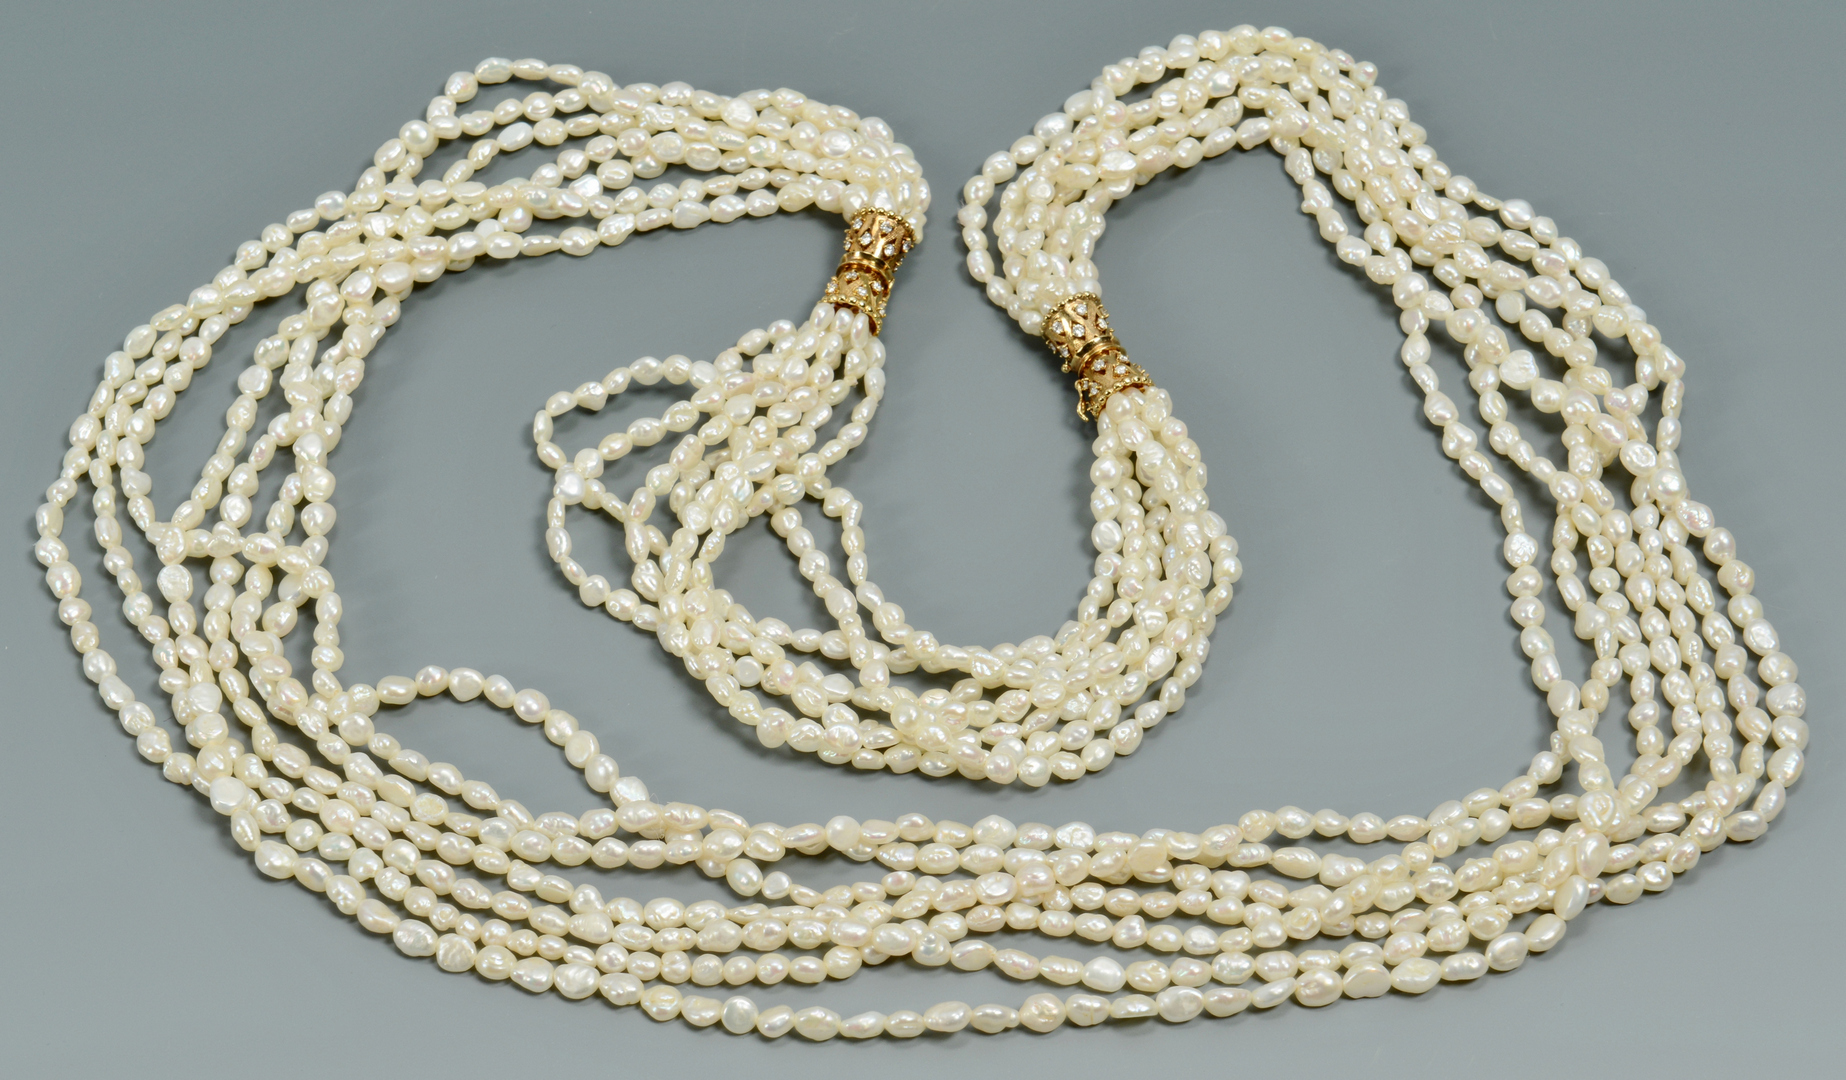 Lot 3088072: 18k Dia Freshwater Pearl Necklace/Bracelet combo